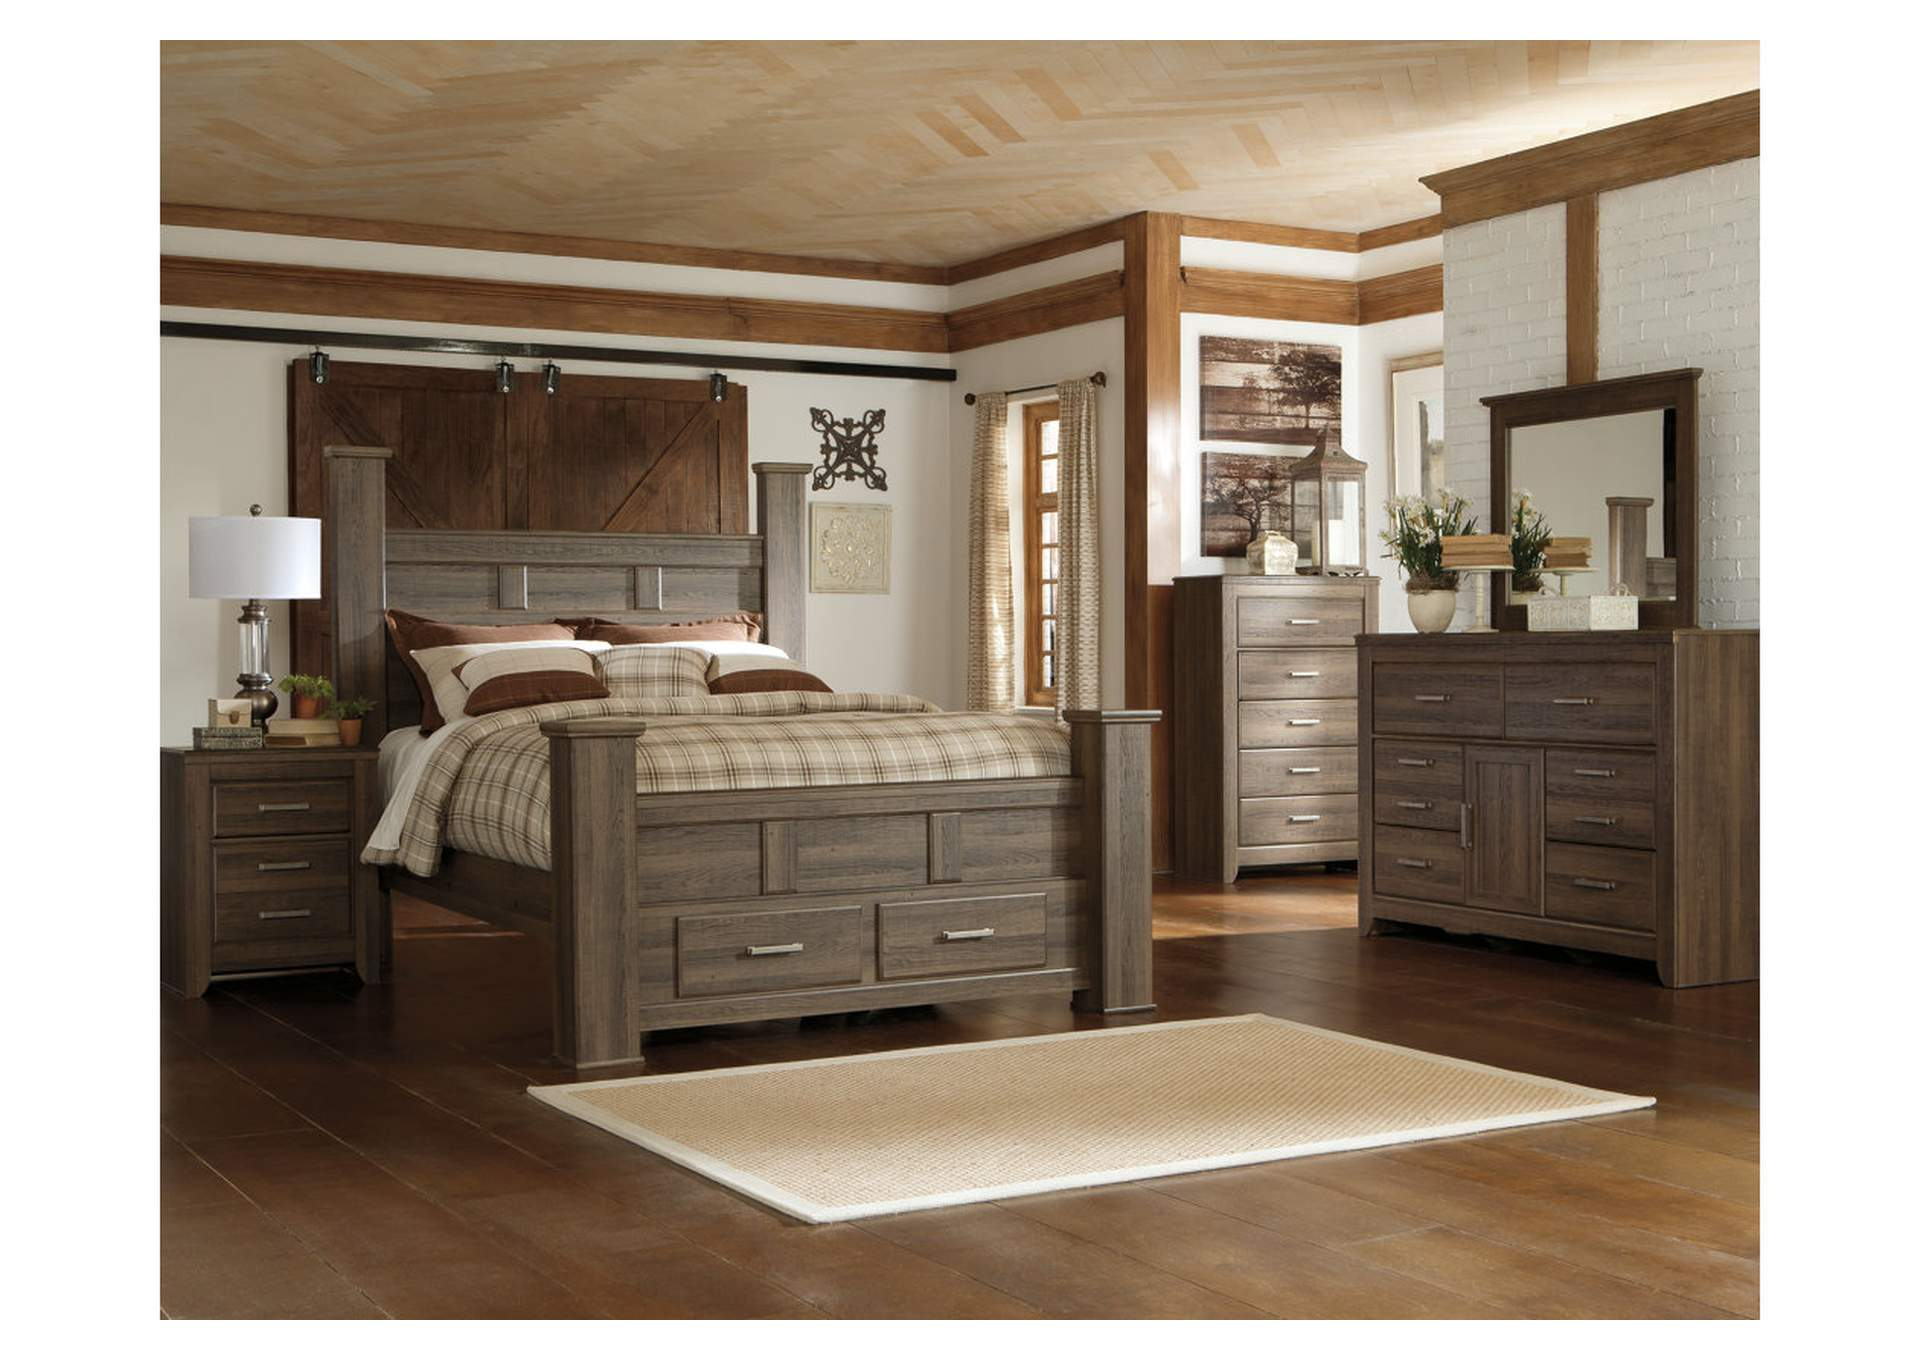 Juararo California King Poster Storage Bed w/Dresser, Mirror, Drawer Chest & Nightstand,Signature Design By Ashley